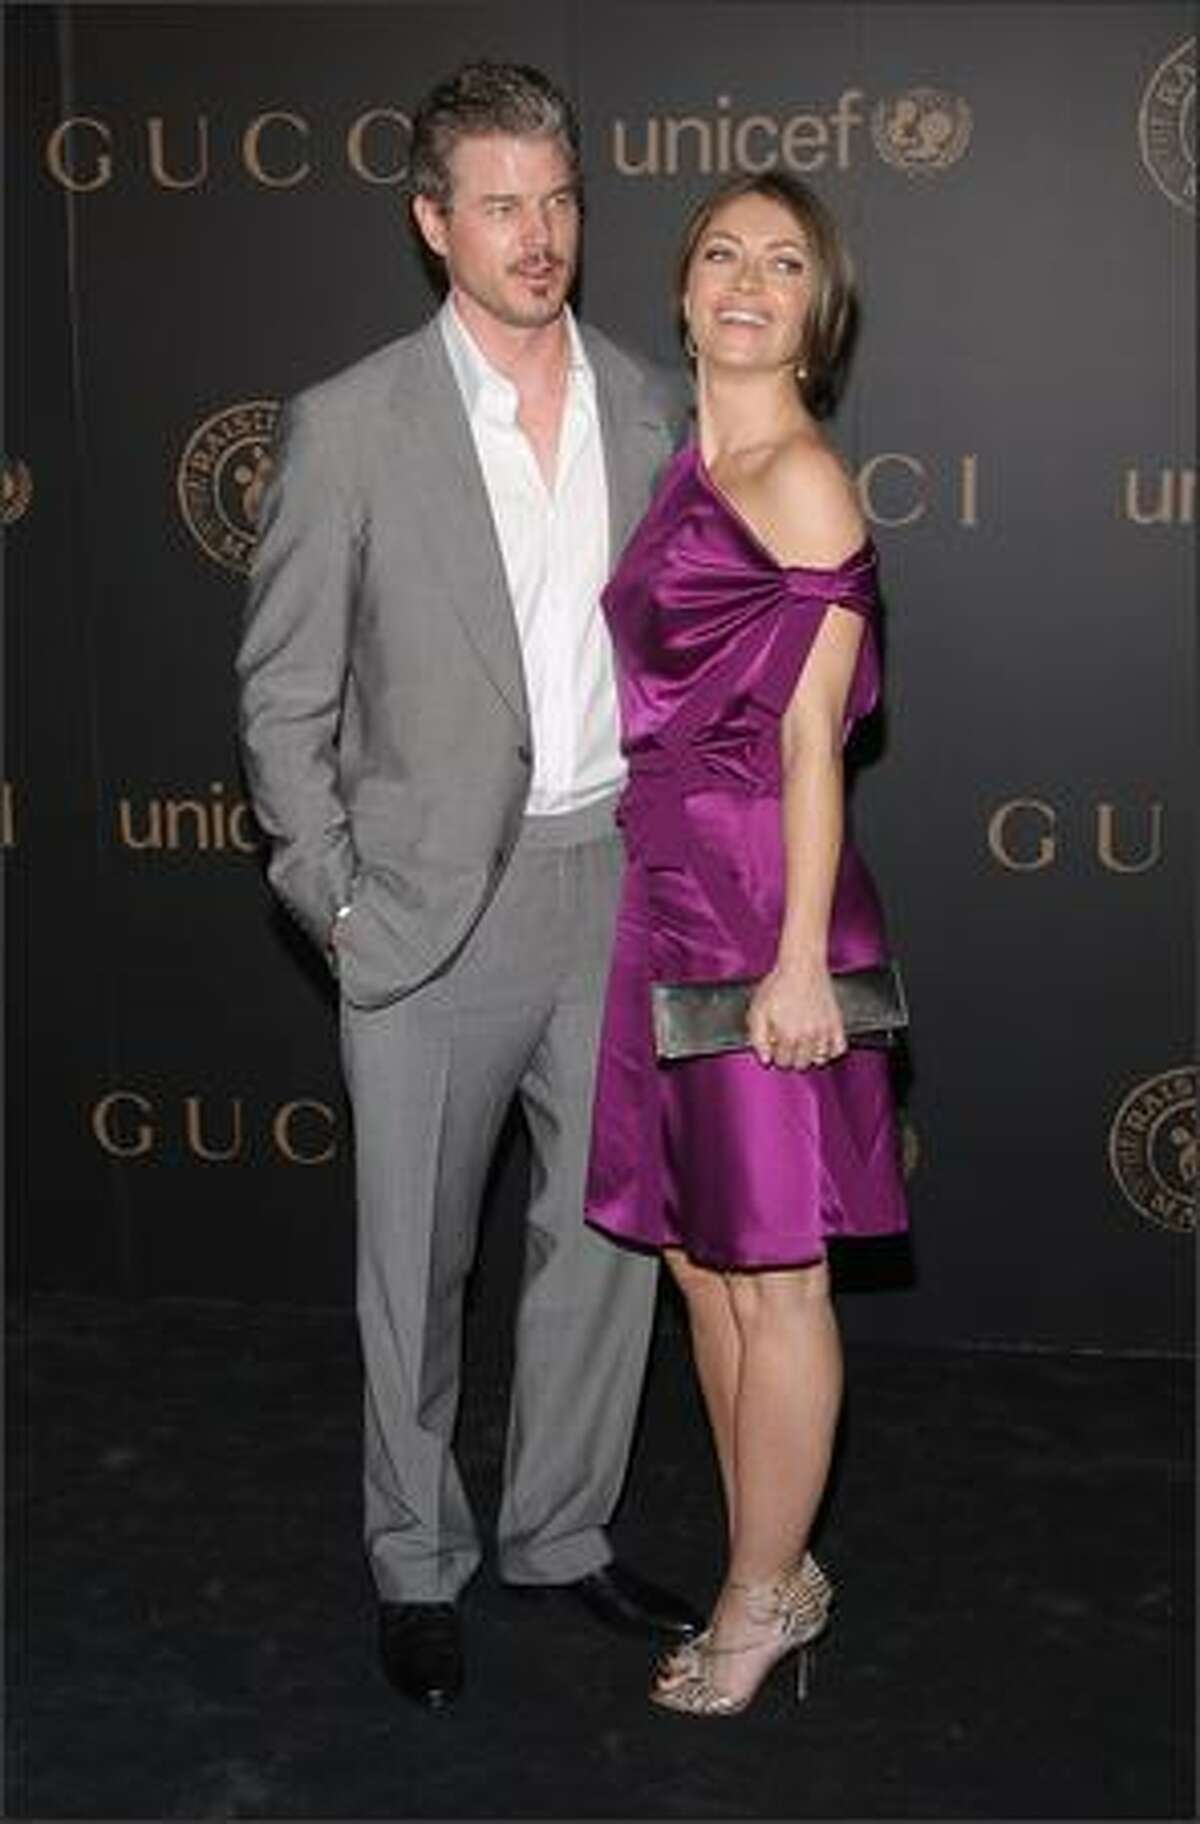 Actor Eric Dane and actress Rebecca Gayheart attend a reception to benefit UNICEF hosted by Gucci during Mercedes-Benz Fashion Week Fall 2008 at The United Nations on February 6, 2008 in New York City.